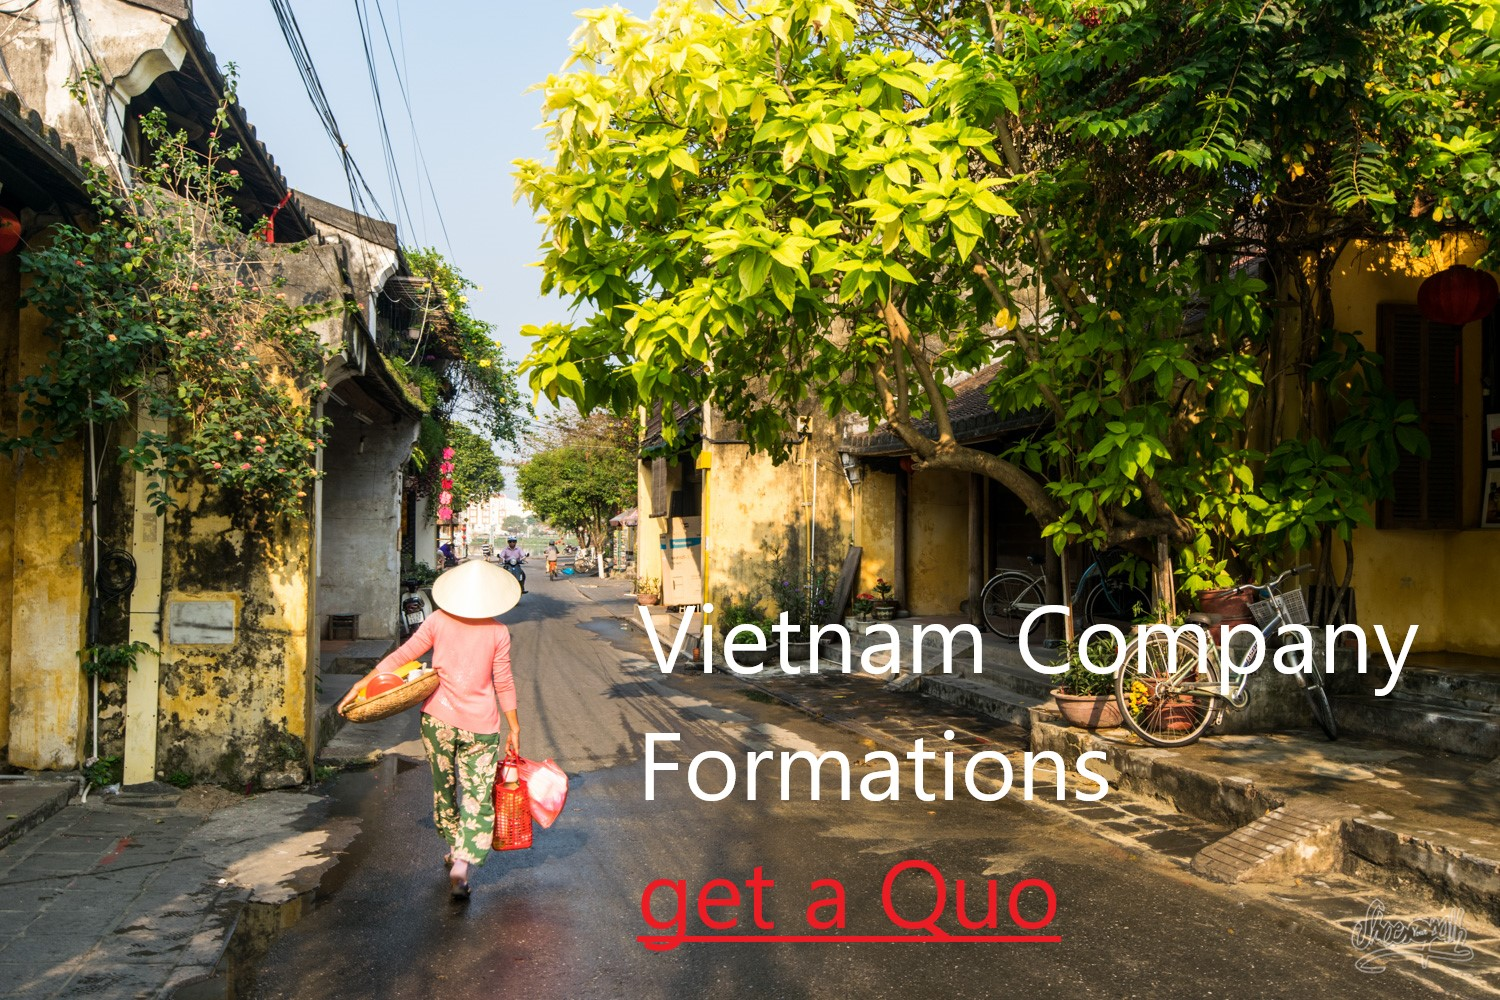 FEE FOR SETUP COMPANY IN VIETNAM